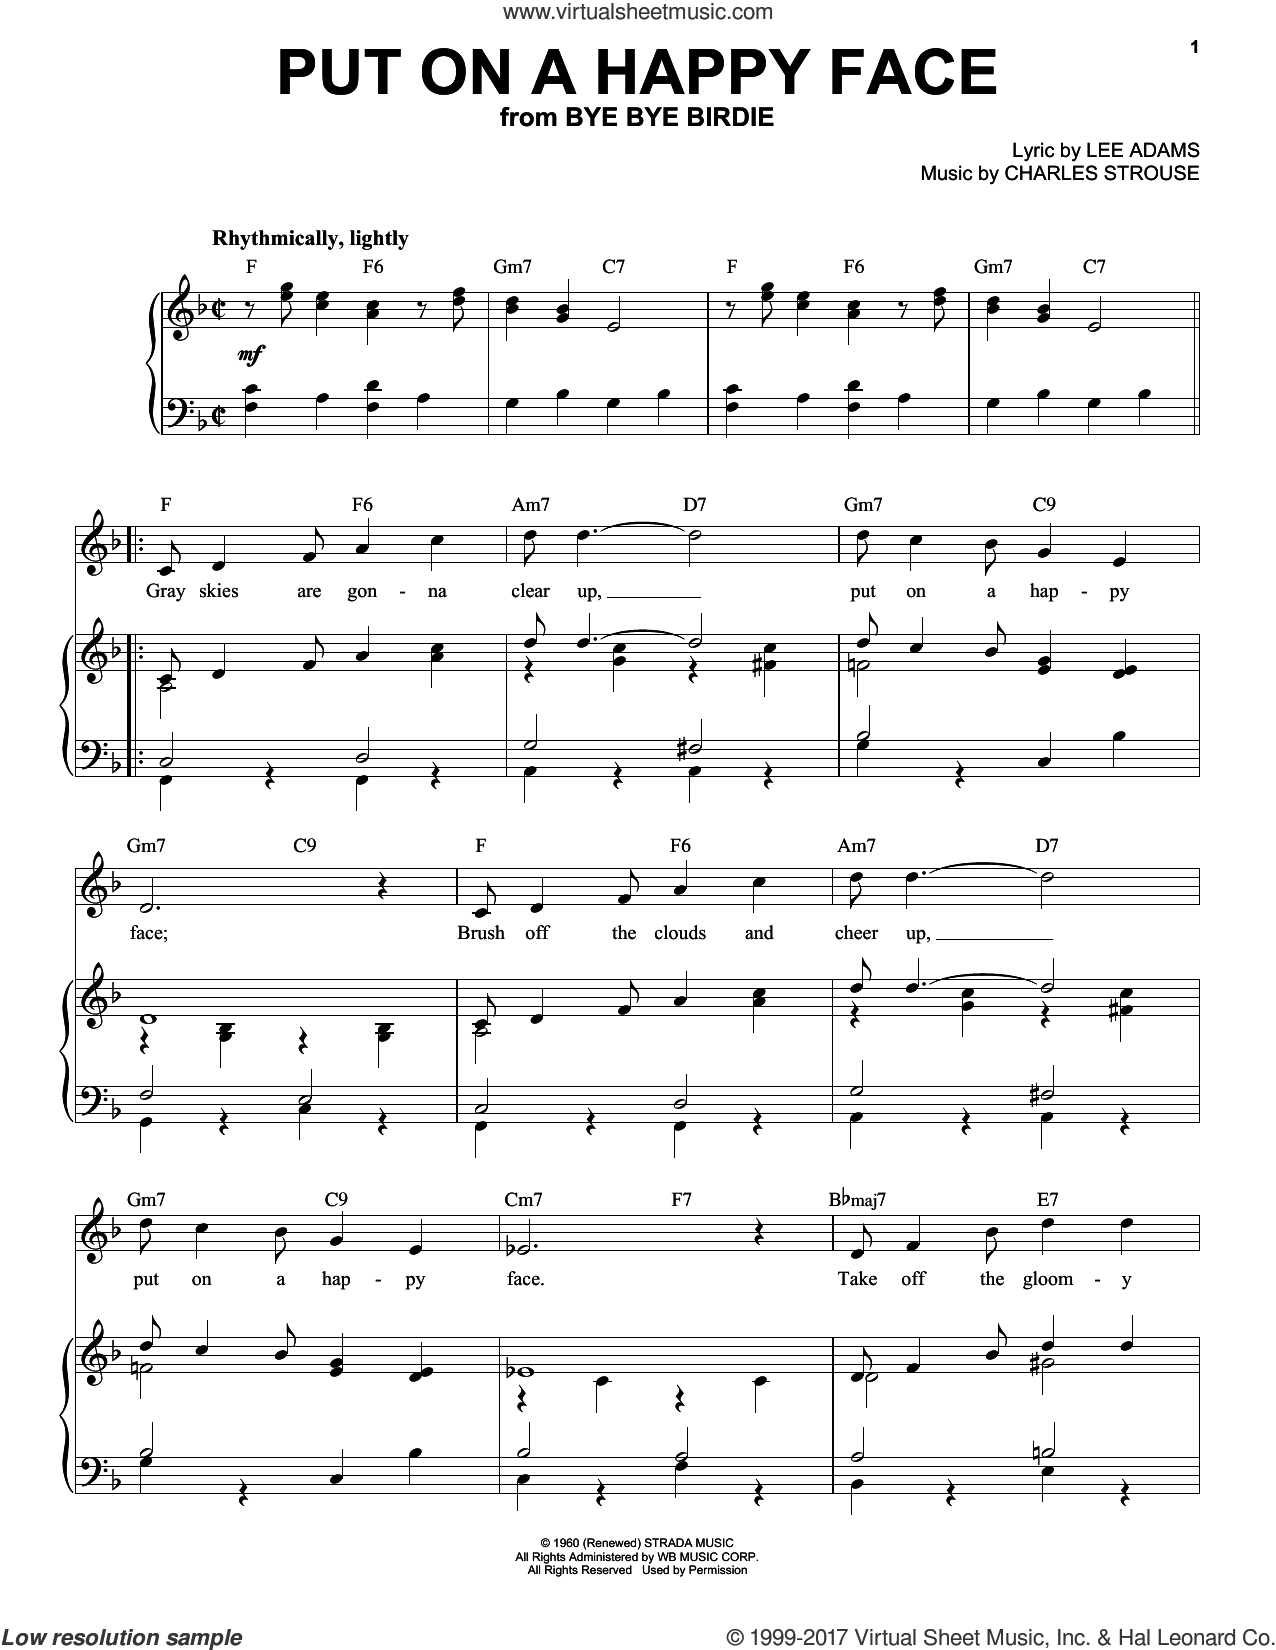 Put On A Happy Face sheet music for voice and piano (High ) by Charles Strouse and Lee Adams. Score Image Preview.